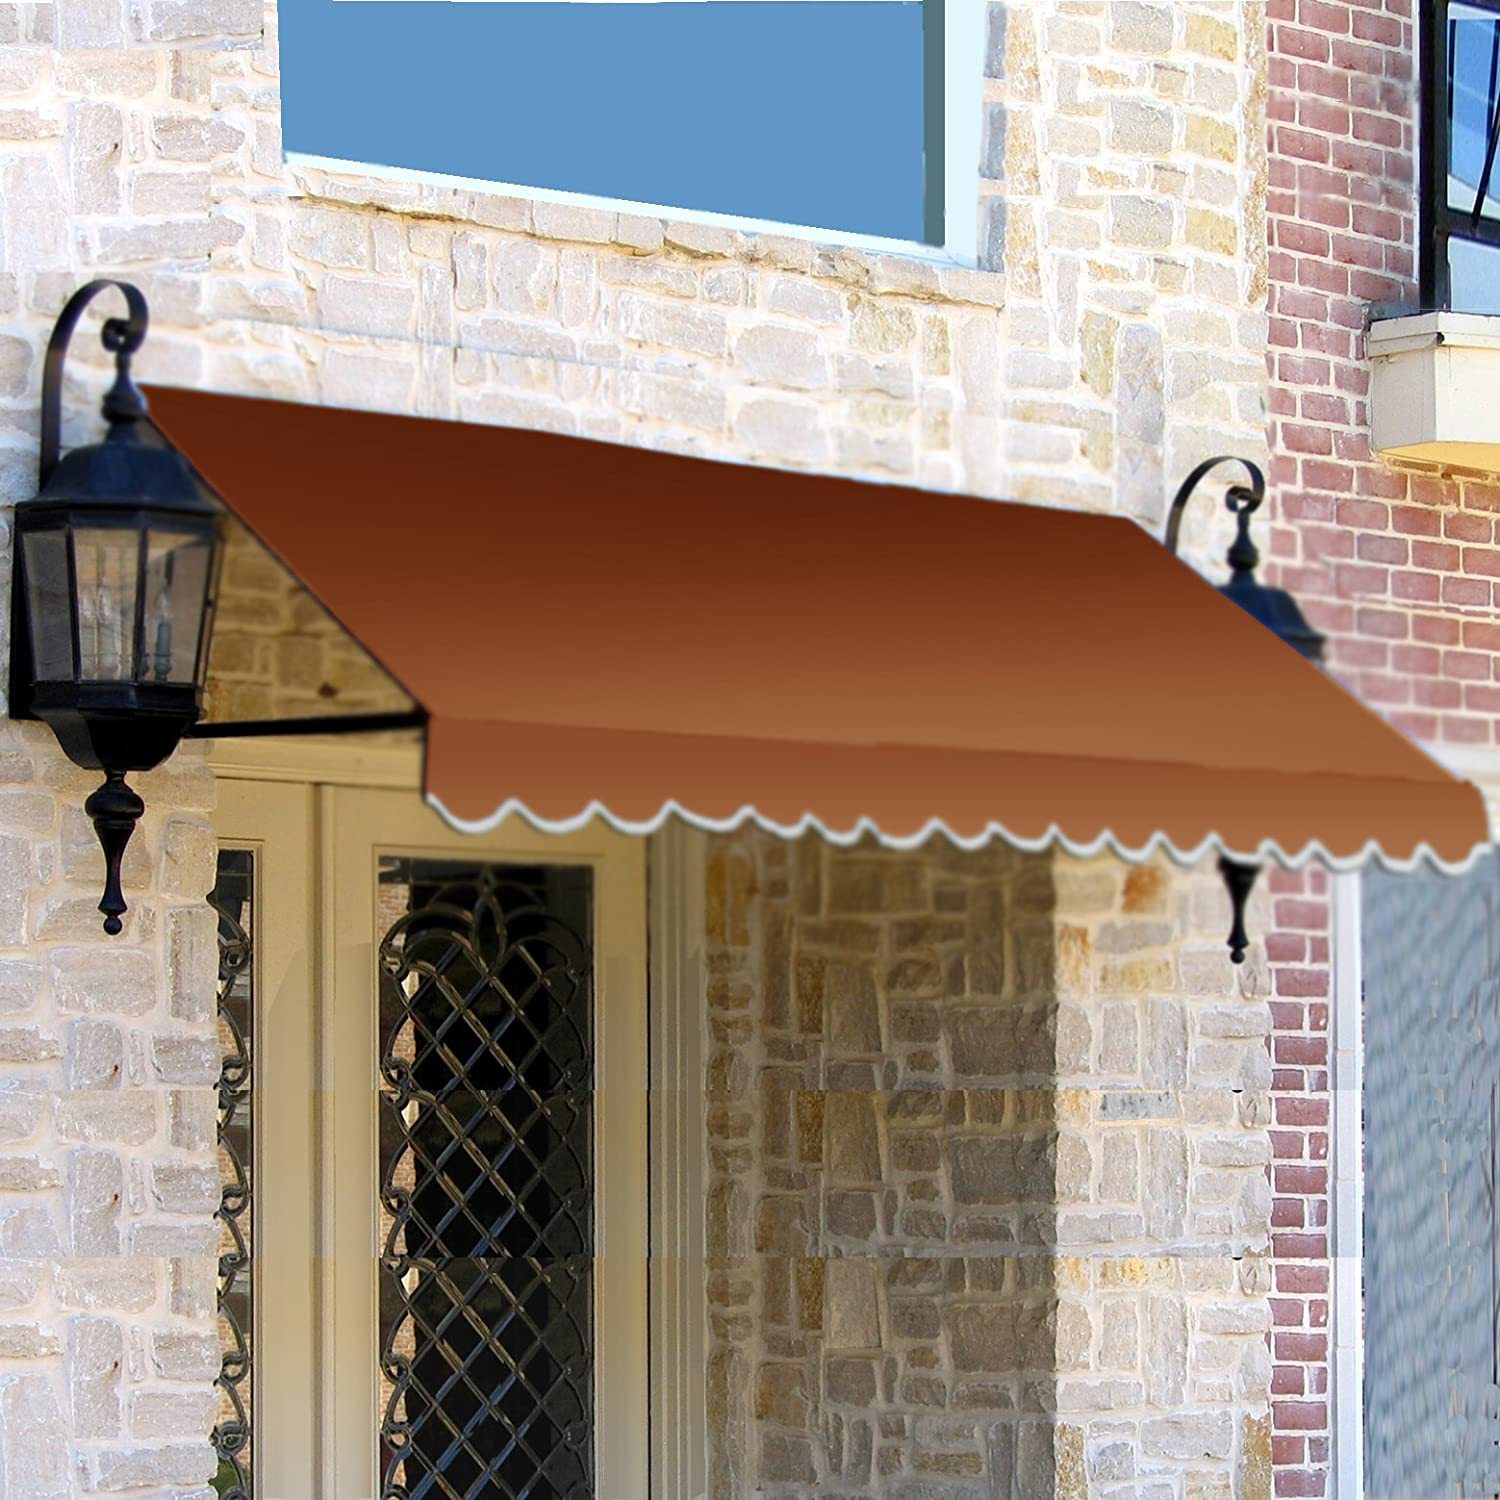 31 by 24-Inch Gray//White Awntech 4-Feet Dallas Retro Window//Entry Awning